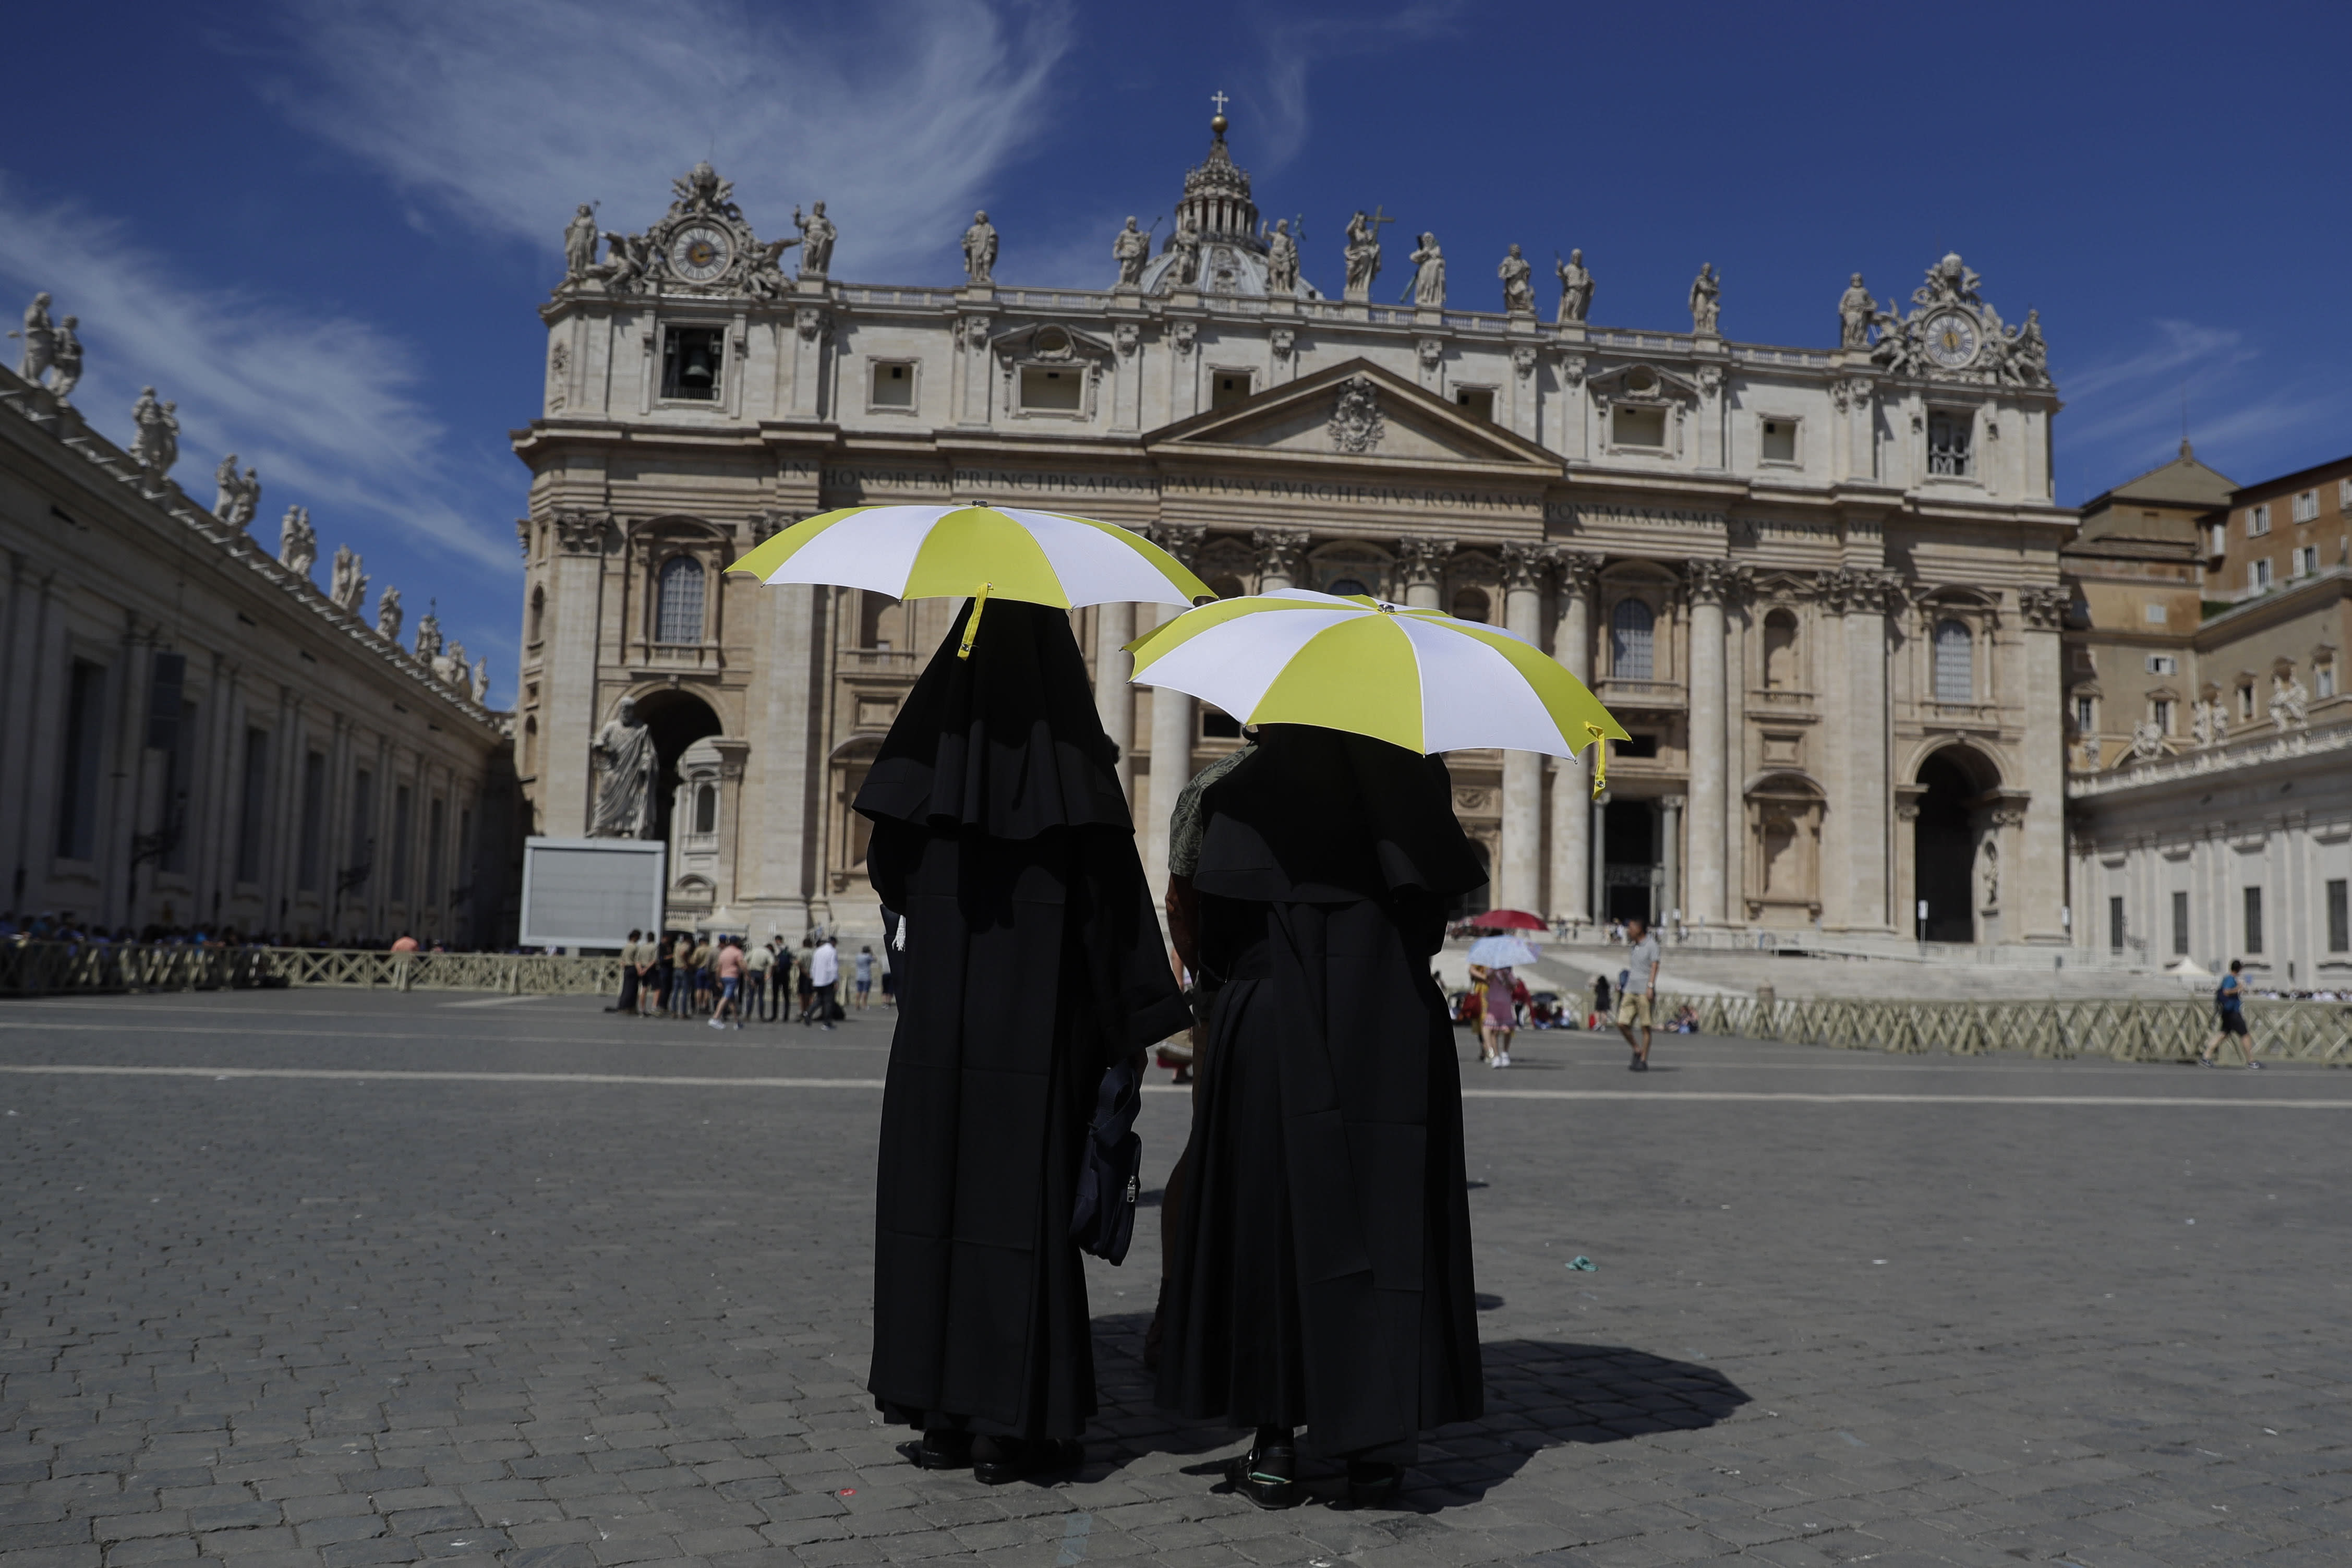 Nuns shelters from the sun with their umbrellas bearing the colors of the Vatican flag prior to the start of Pope Francis Angelus prayer in St. Peter's Square at the Vatican, Sunday, Aug. 4, 2019. Pope Francis told a crowd gathered in St. Peter's Square for the weekly Angelus blessing Sunday that ''I am spiritually close to the victims of the episodes of violence that have bloodied Texas, California and Ohio, in the United States, striking defenseless people.'' (AP Photo/Gregorio Borgia)